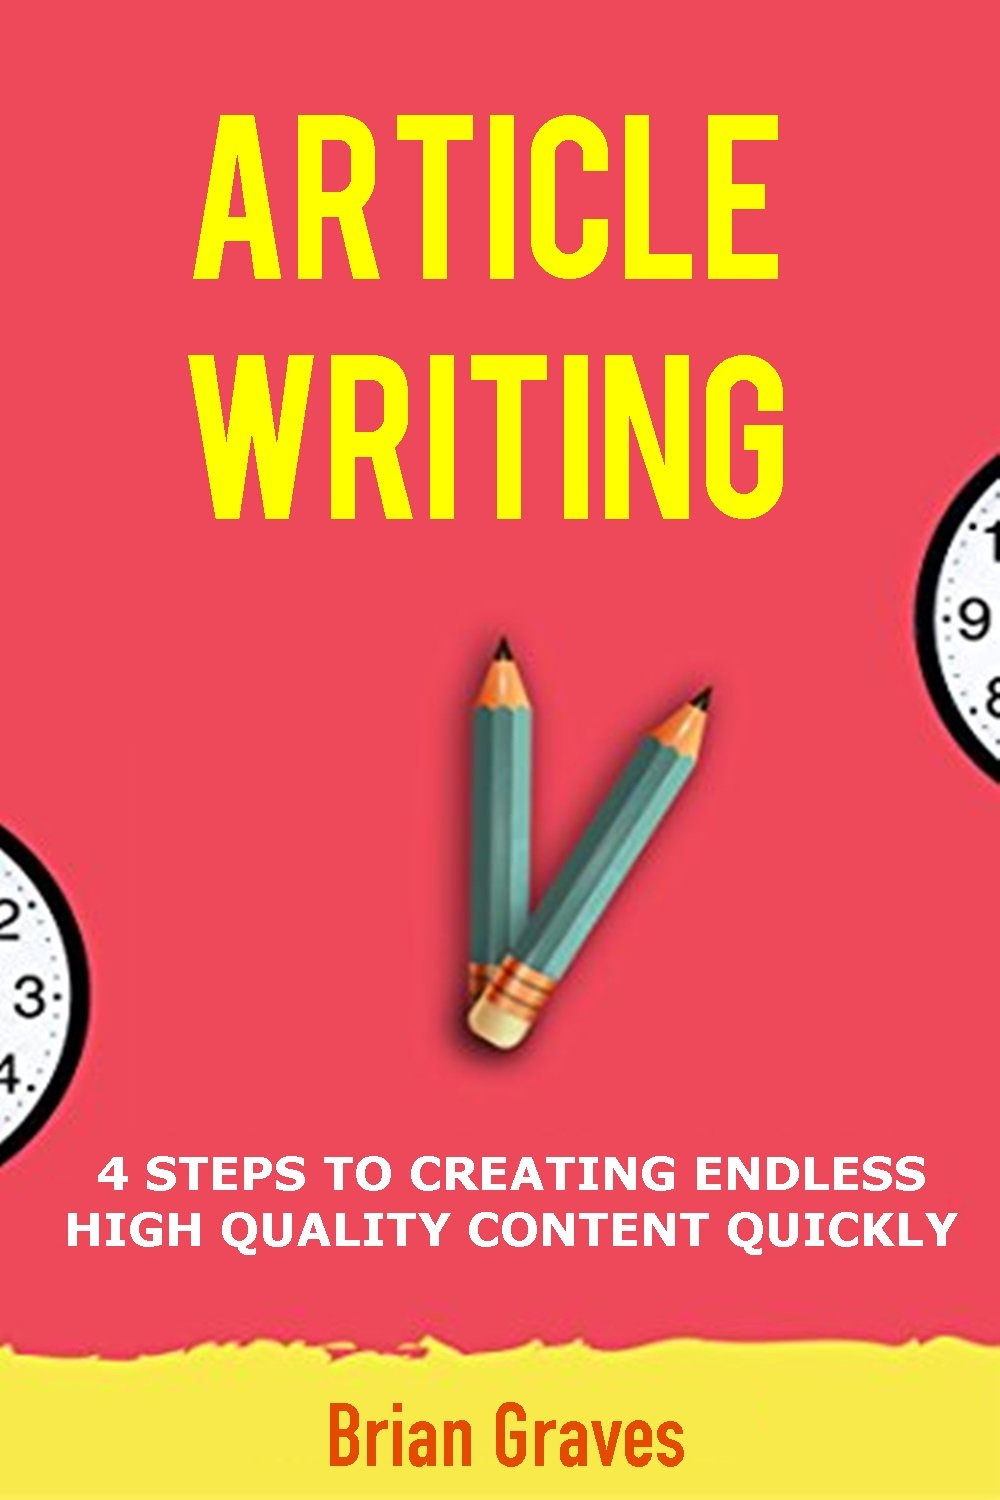 ARTICLE WRITING: 4 STEPS TO CREATING ENDLESS HIGH QUALITY CONTENT QUICKLY: (article writing template, writing articles, content, website content, creating content, writing)